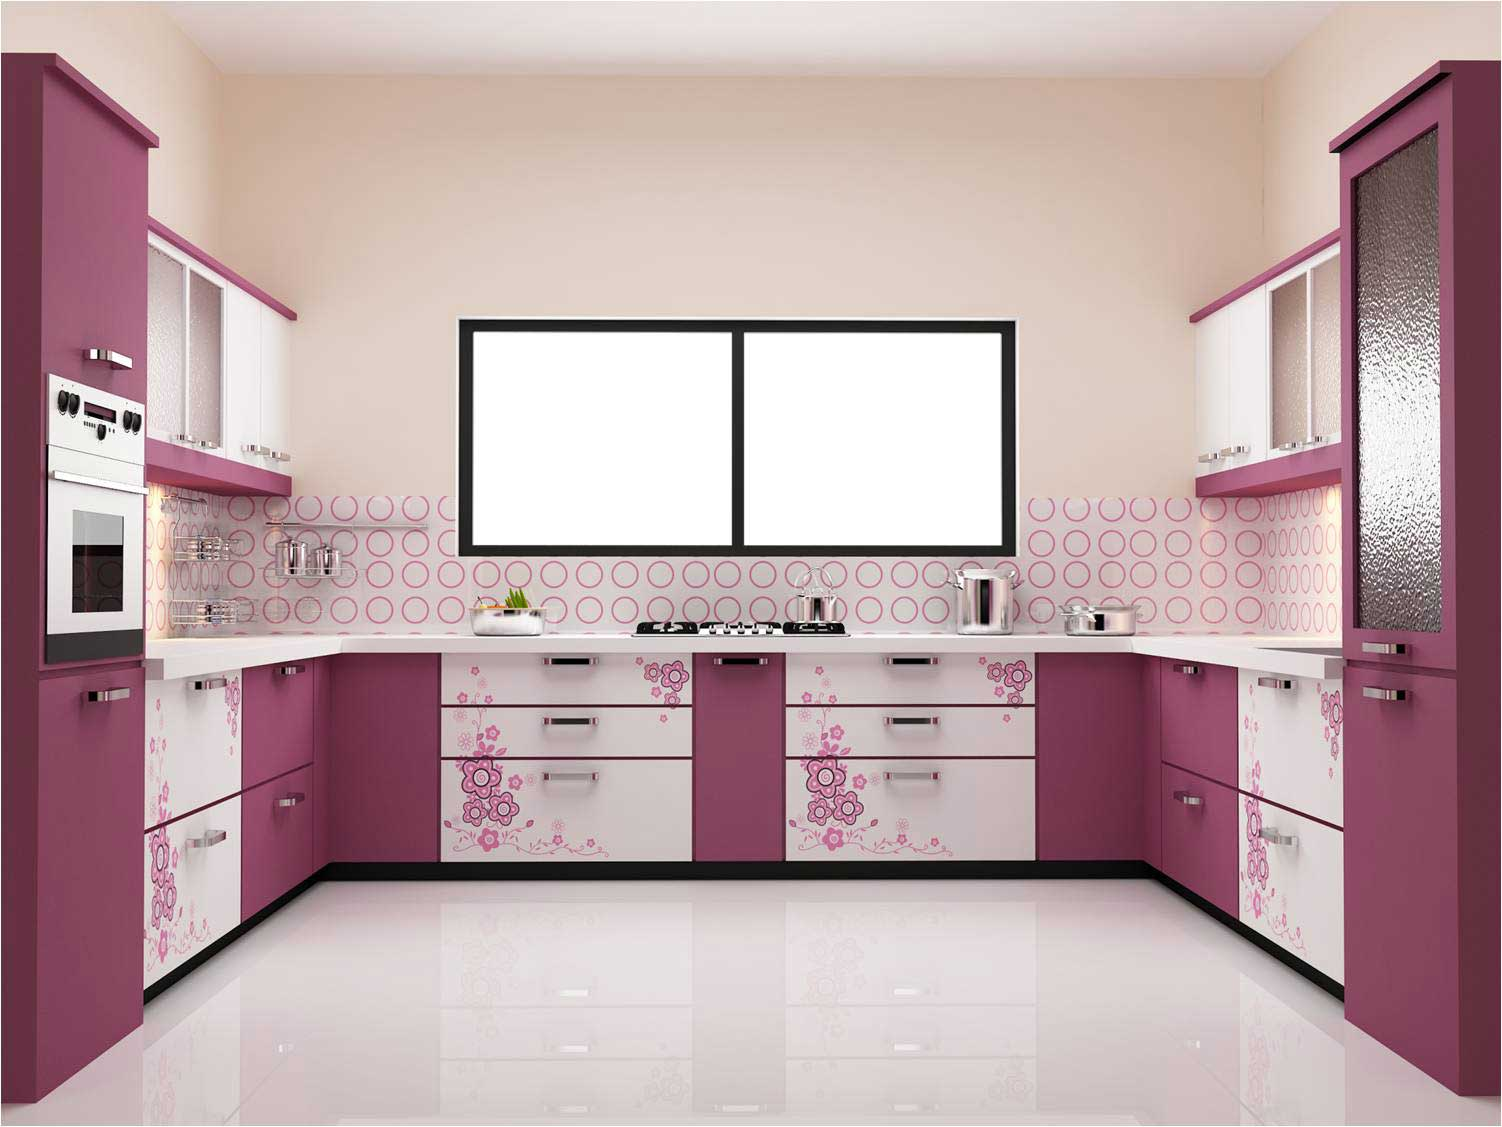 Modular kitchen installation interior decoration kolkata for Kitchen furniture design ideas